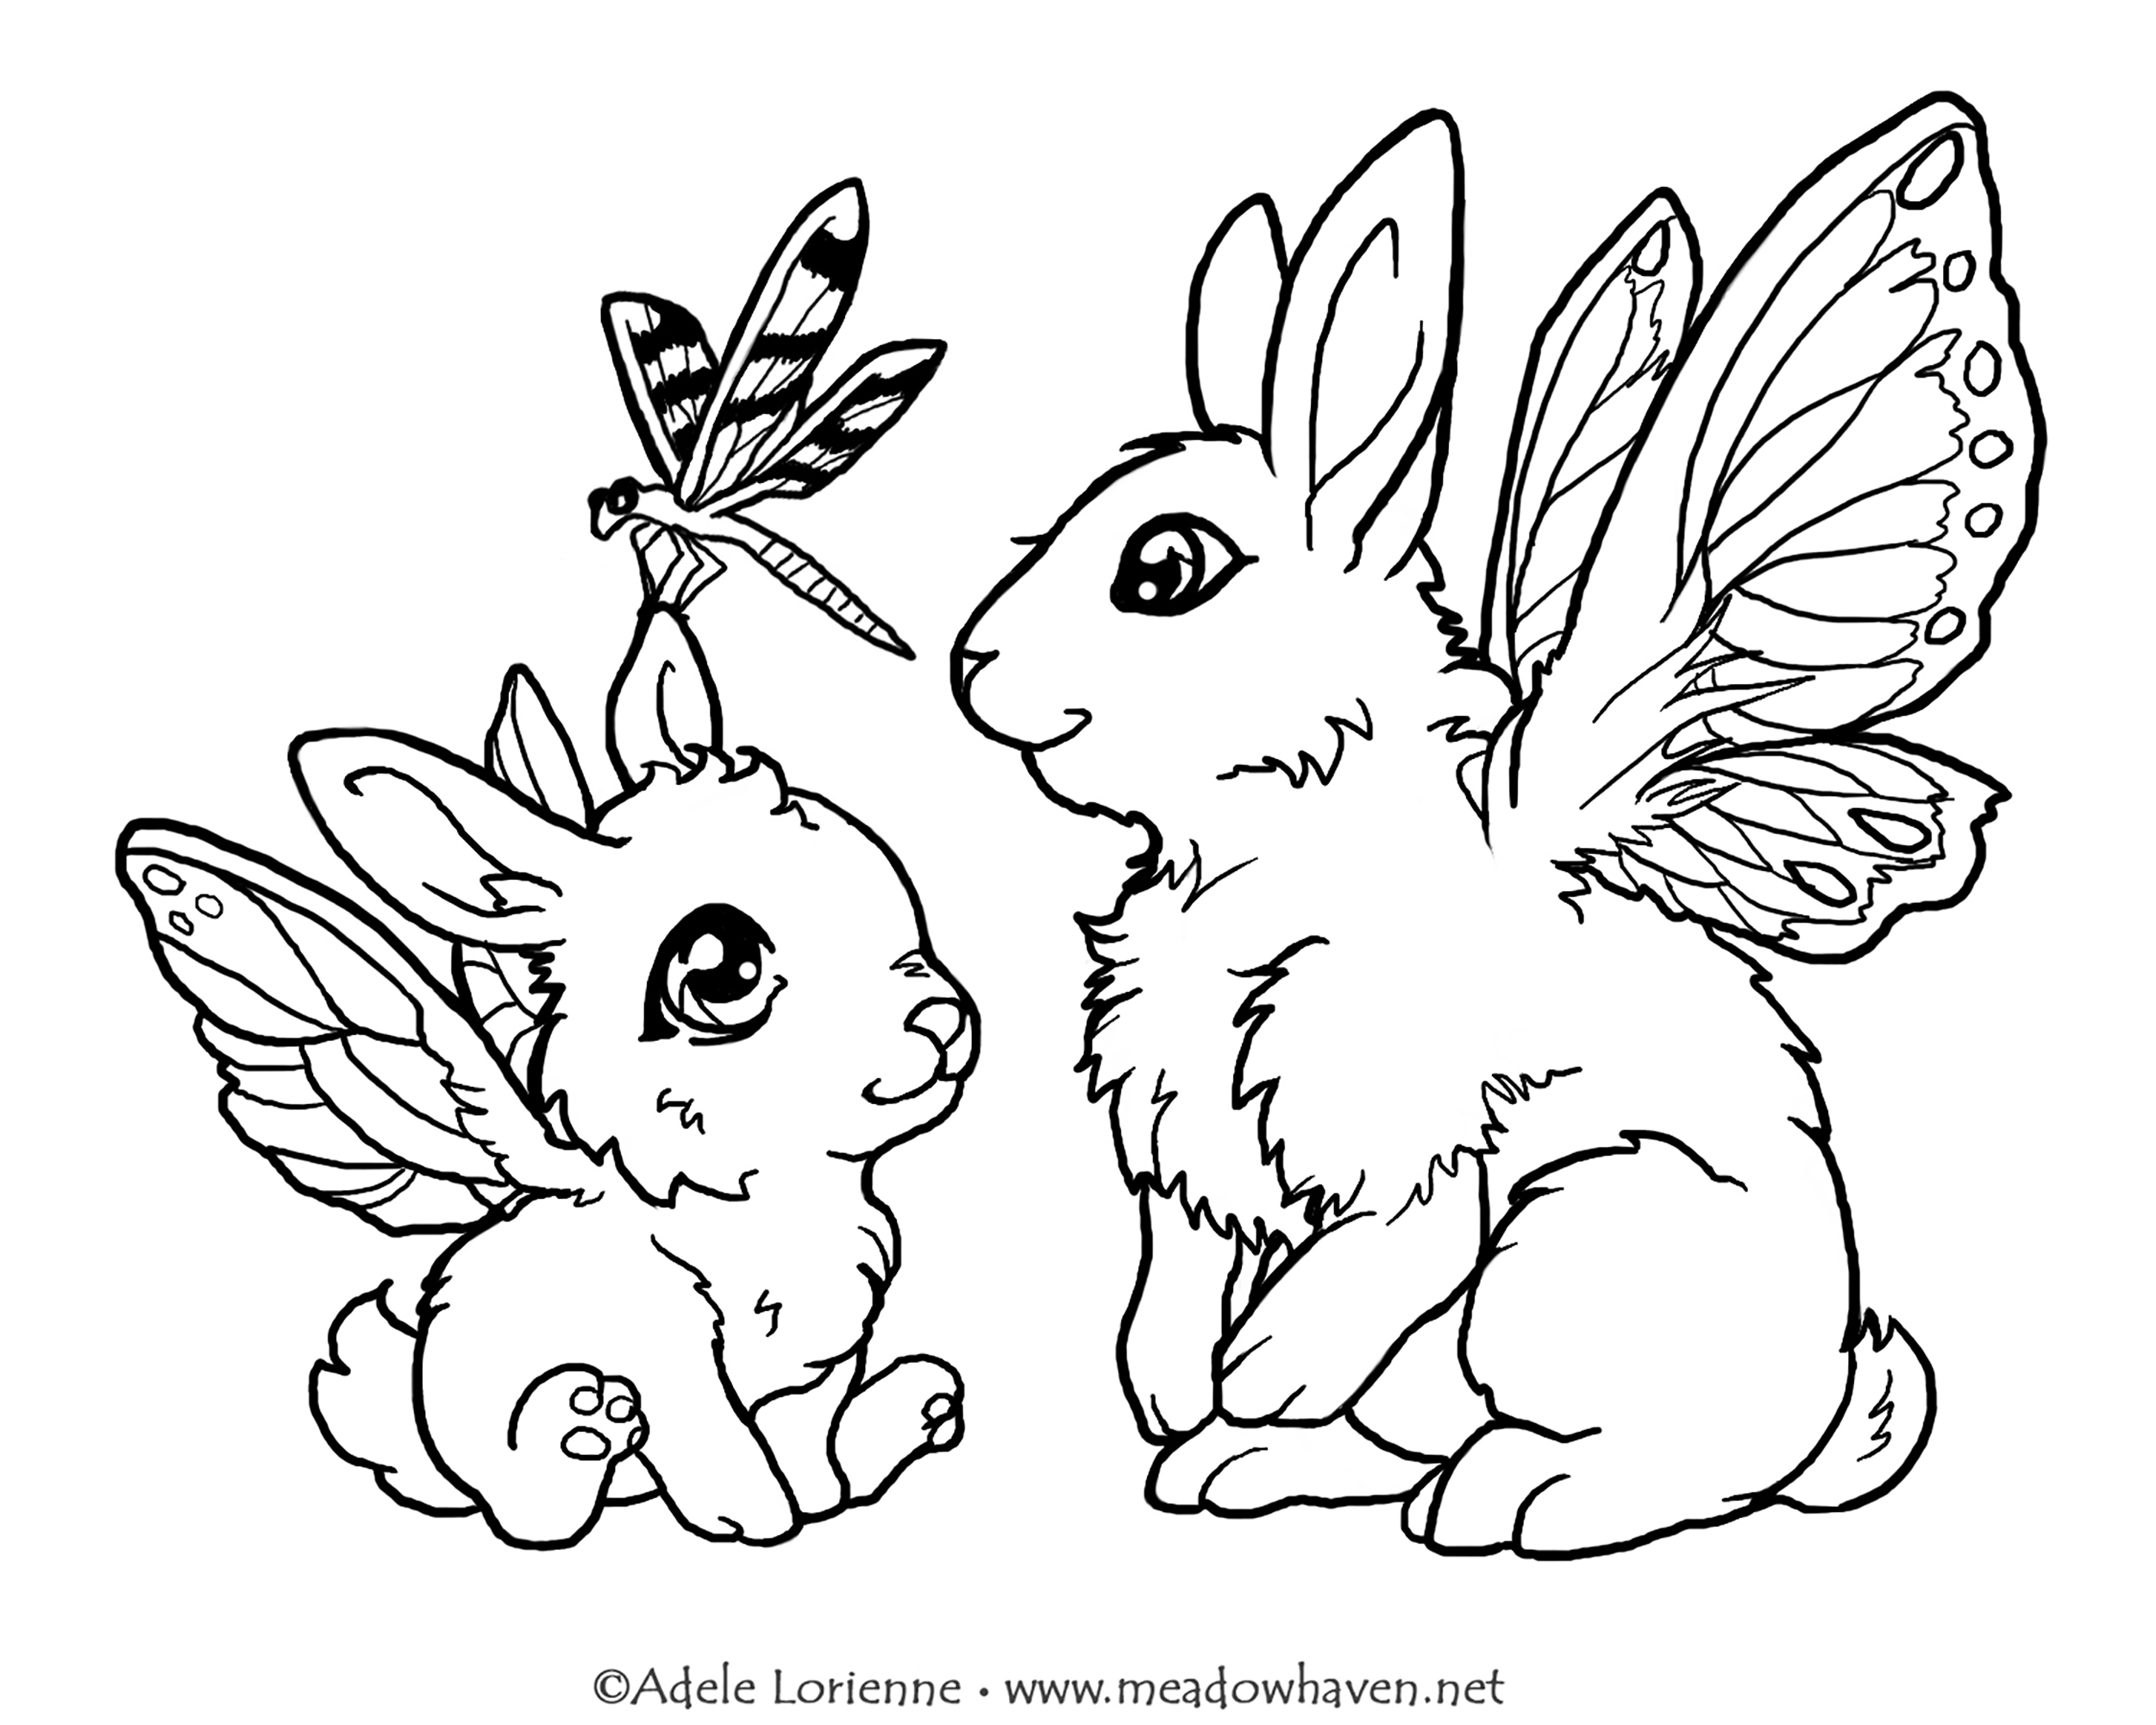 Those cute bunnies will show you how to fly like a dragonfly if you color them !